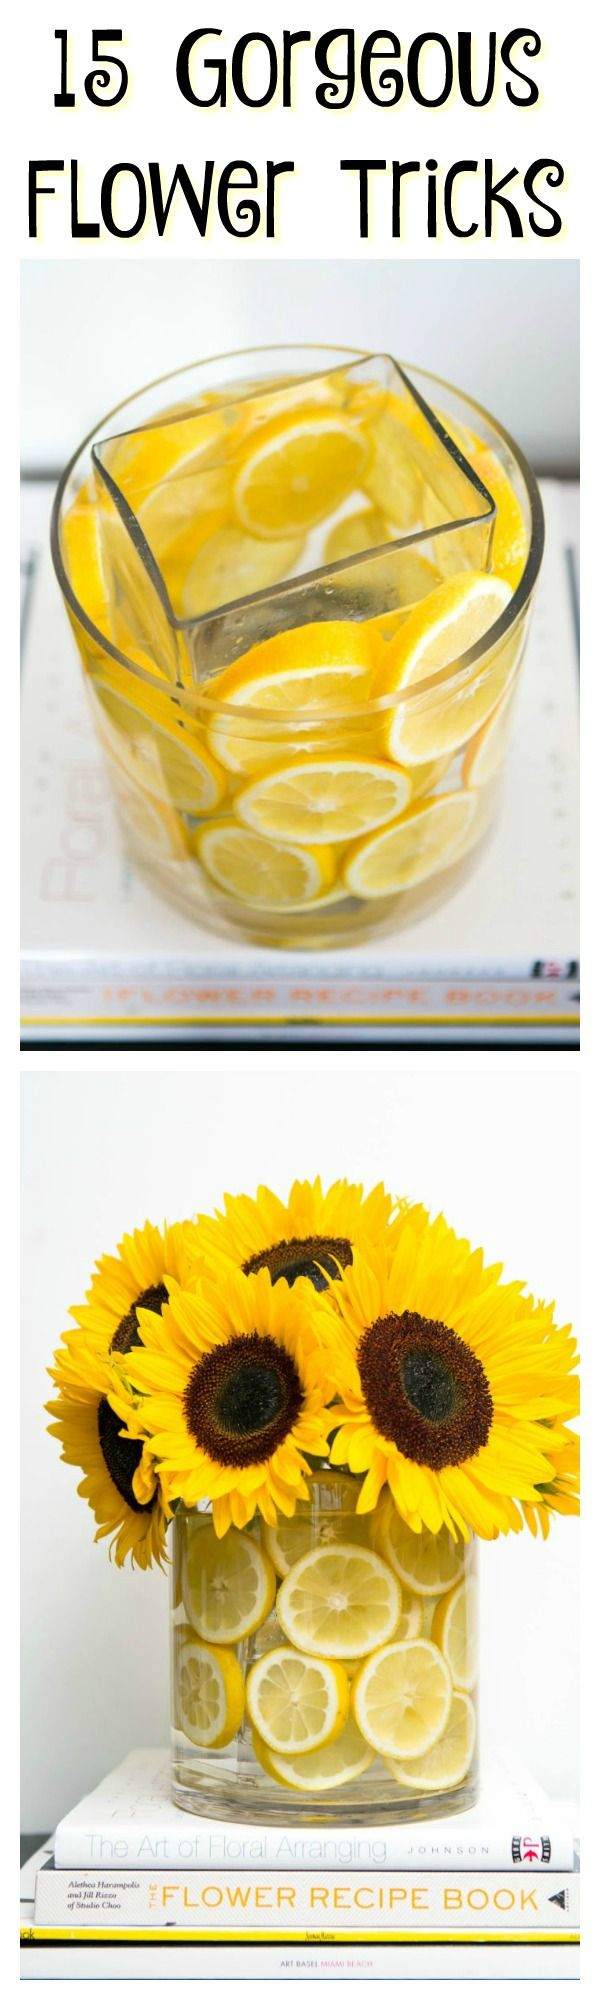 Best 25 vase ideas ideas on pinterest diy cans coffee can 15 gorgeous flower tricks that will blow your mind reviewsmspy